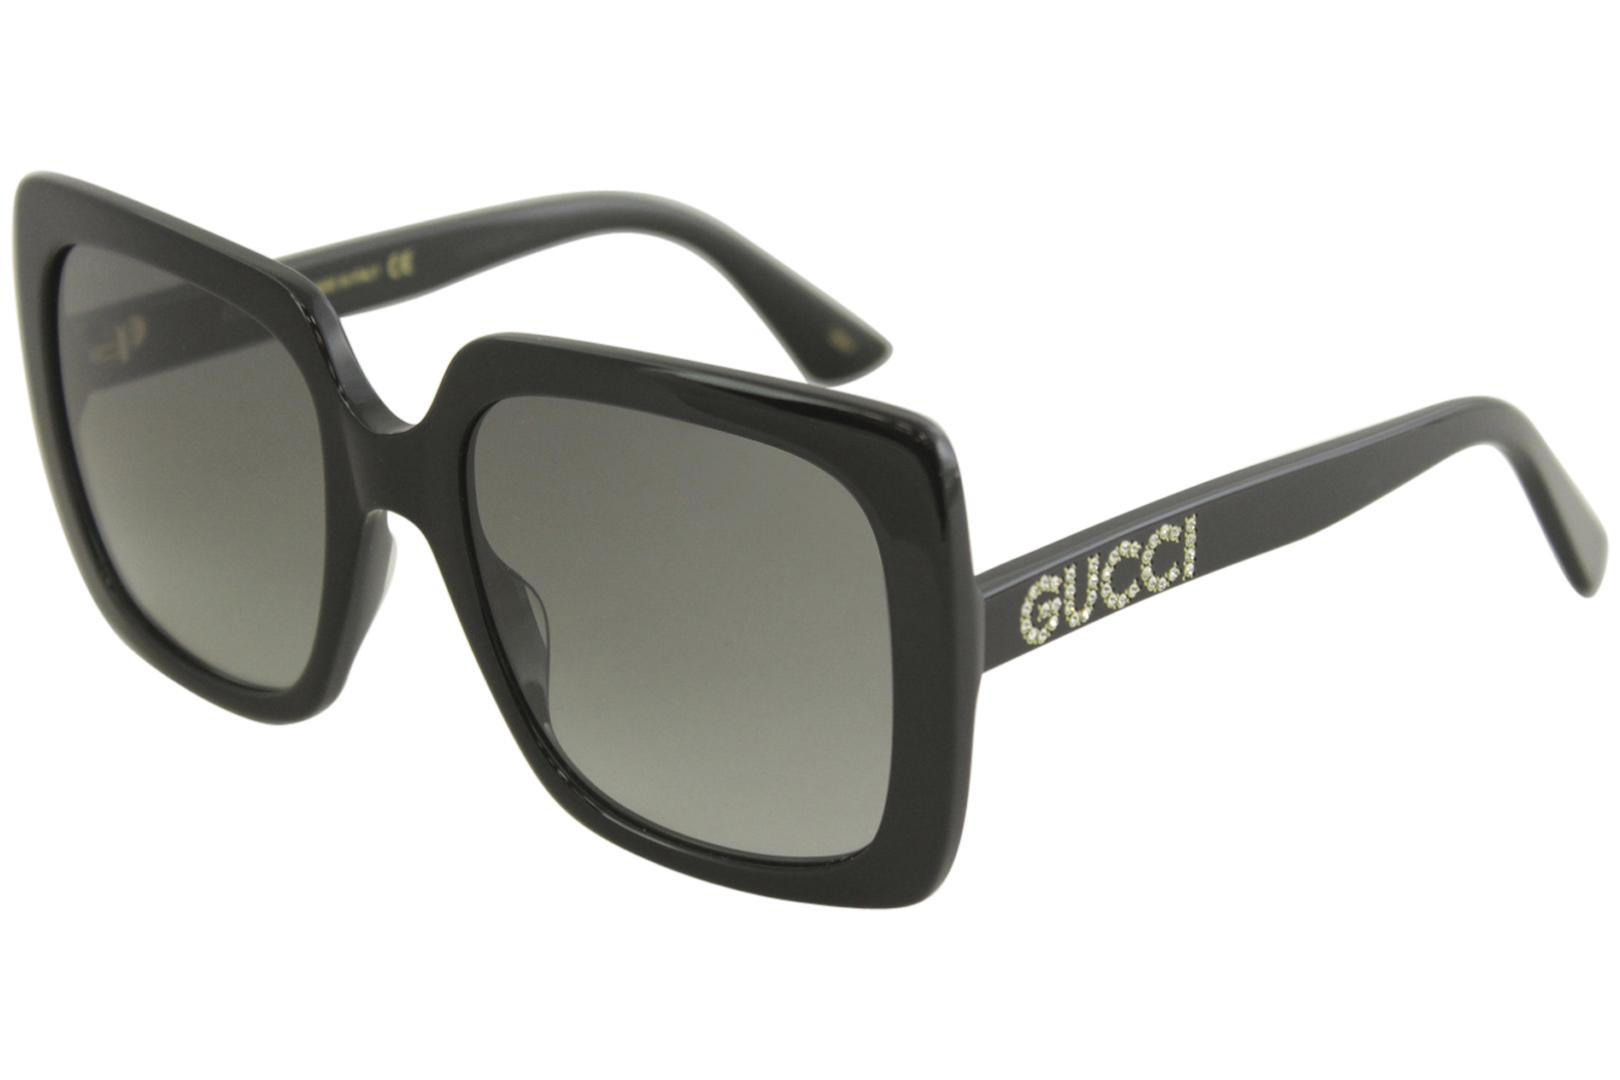 Gucci Women's GG0418S GG/0418/S Fashion Square Sunglasses